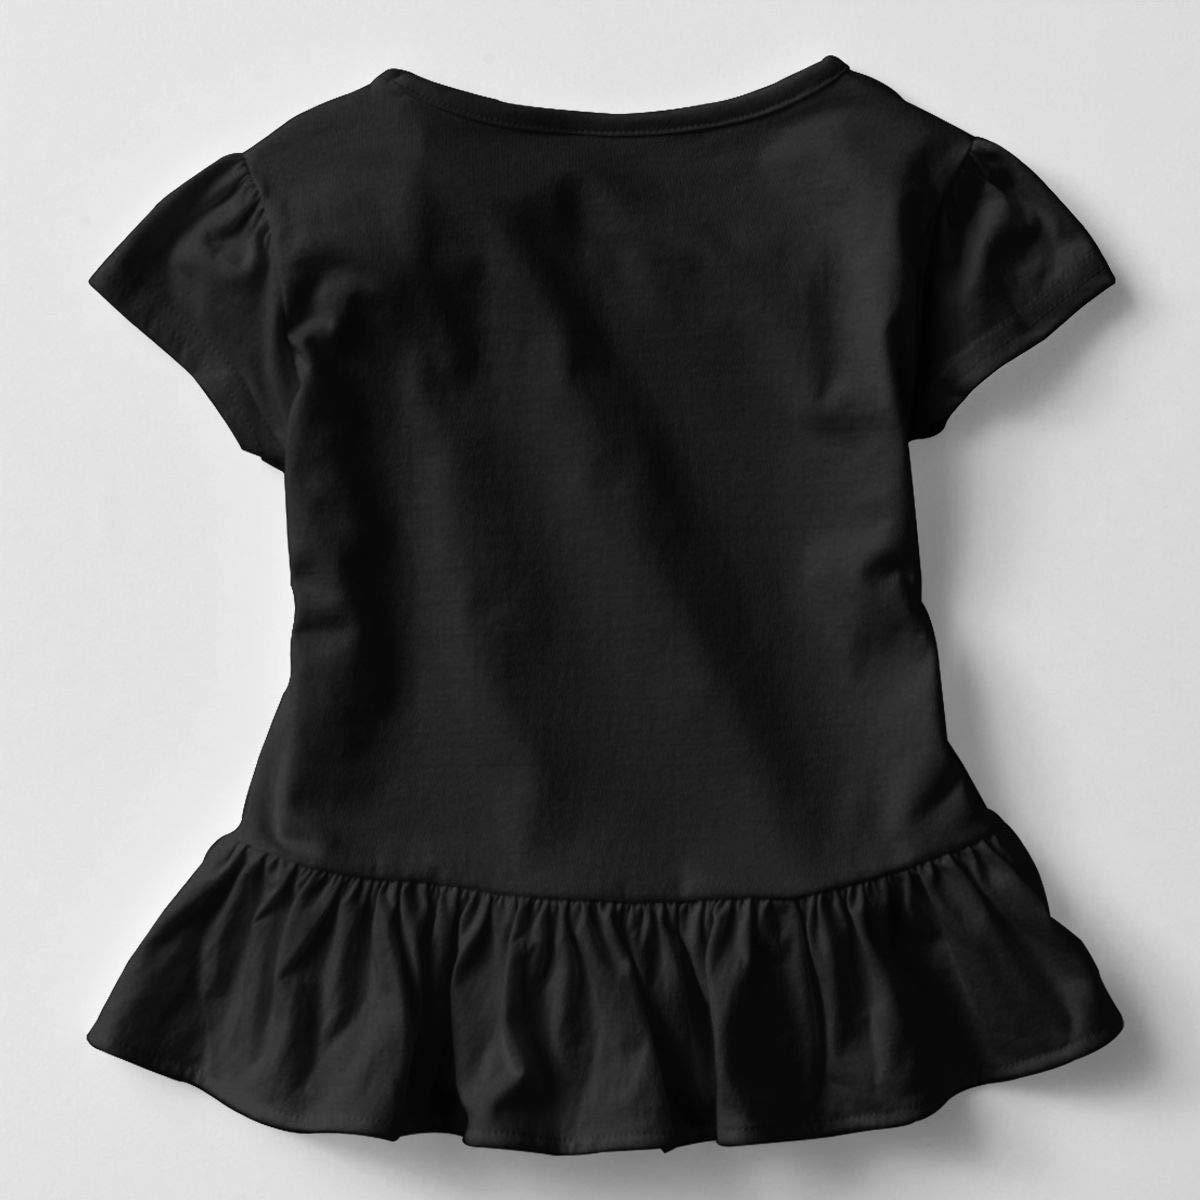 GNKTGBO2O Toddler Girls Tuxedo with Bow-tie 100/% Cotton T Shirts Short Sleeve Ruffle Tee Basic Tops